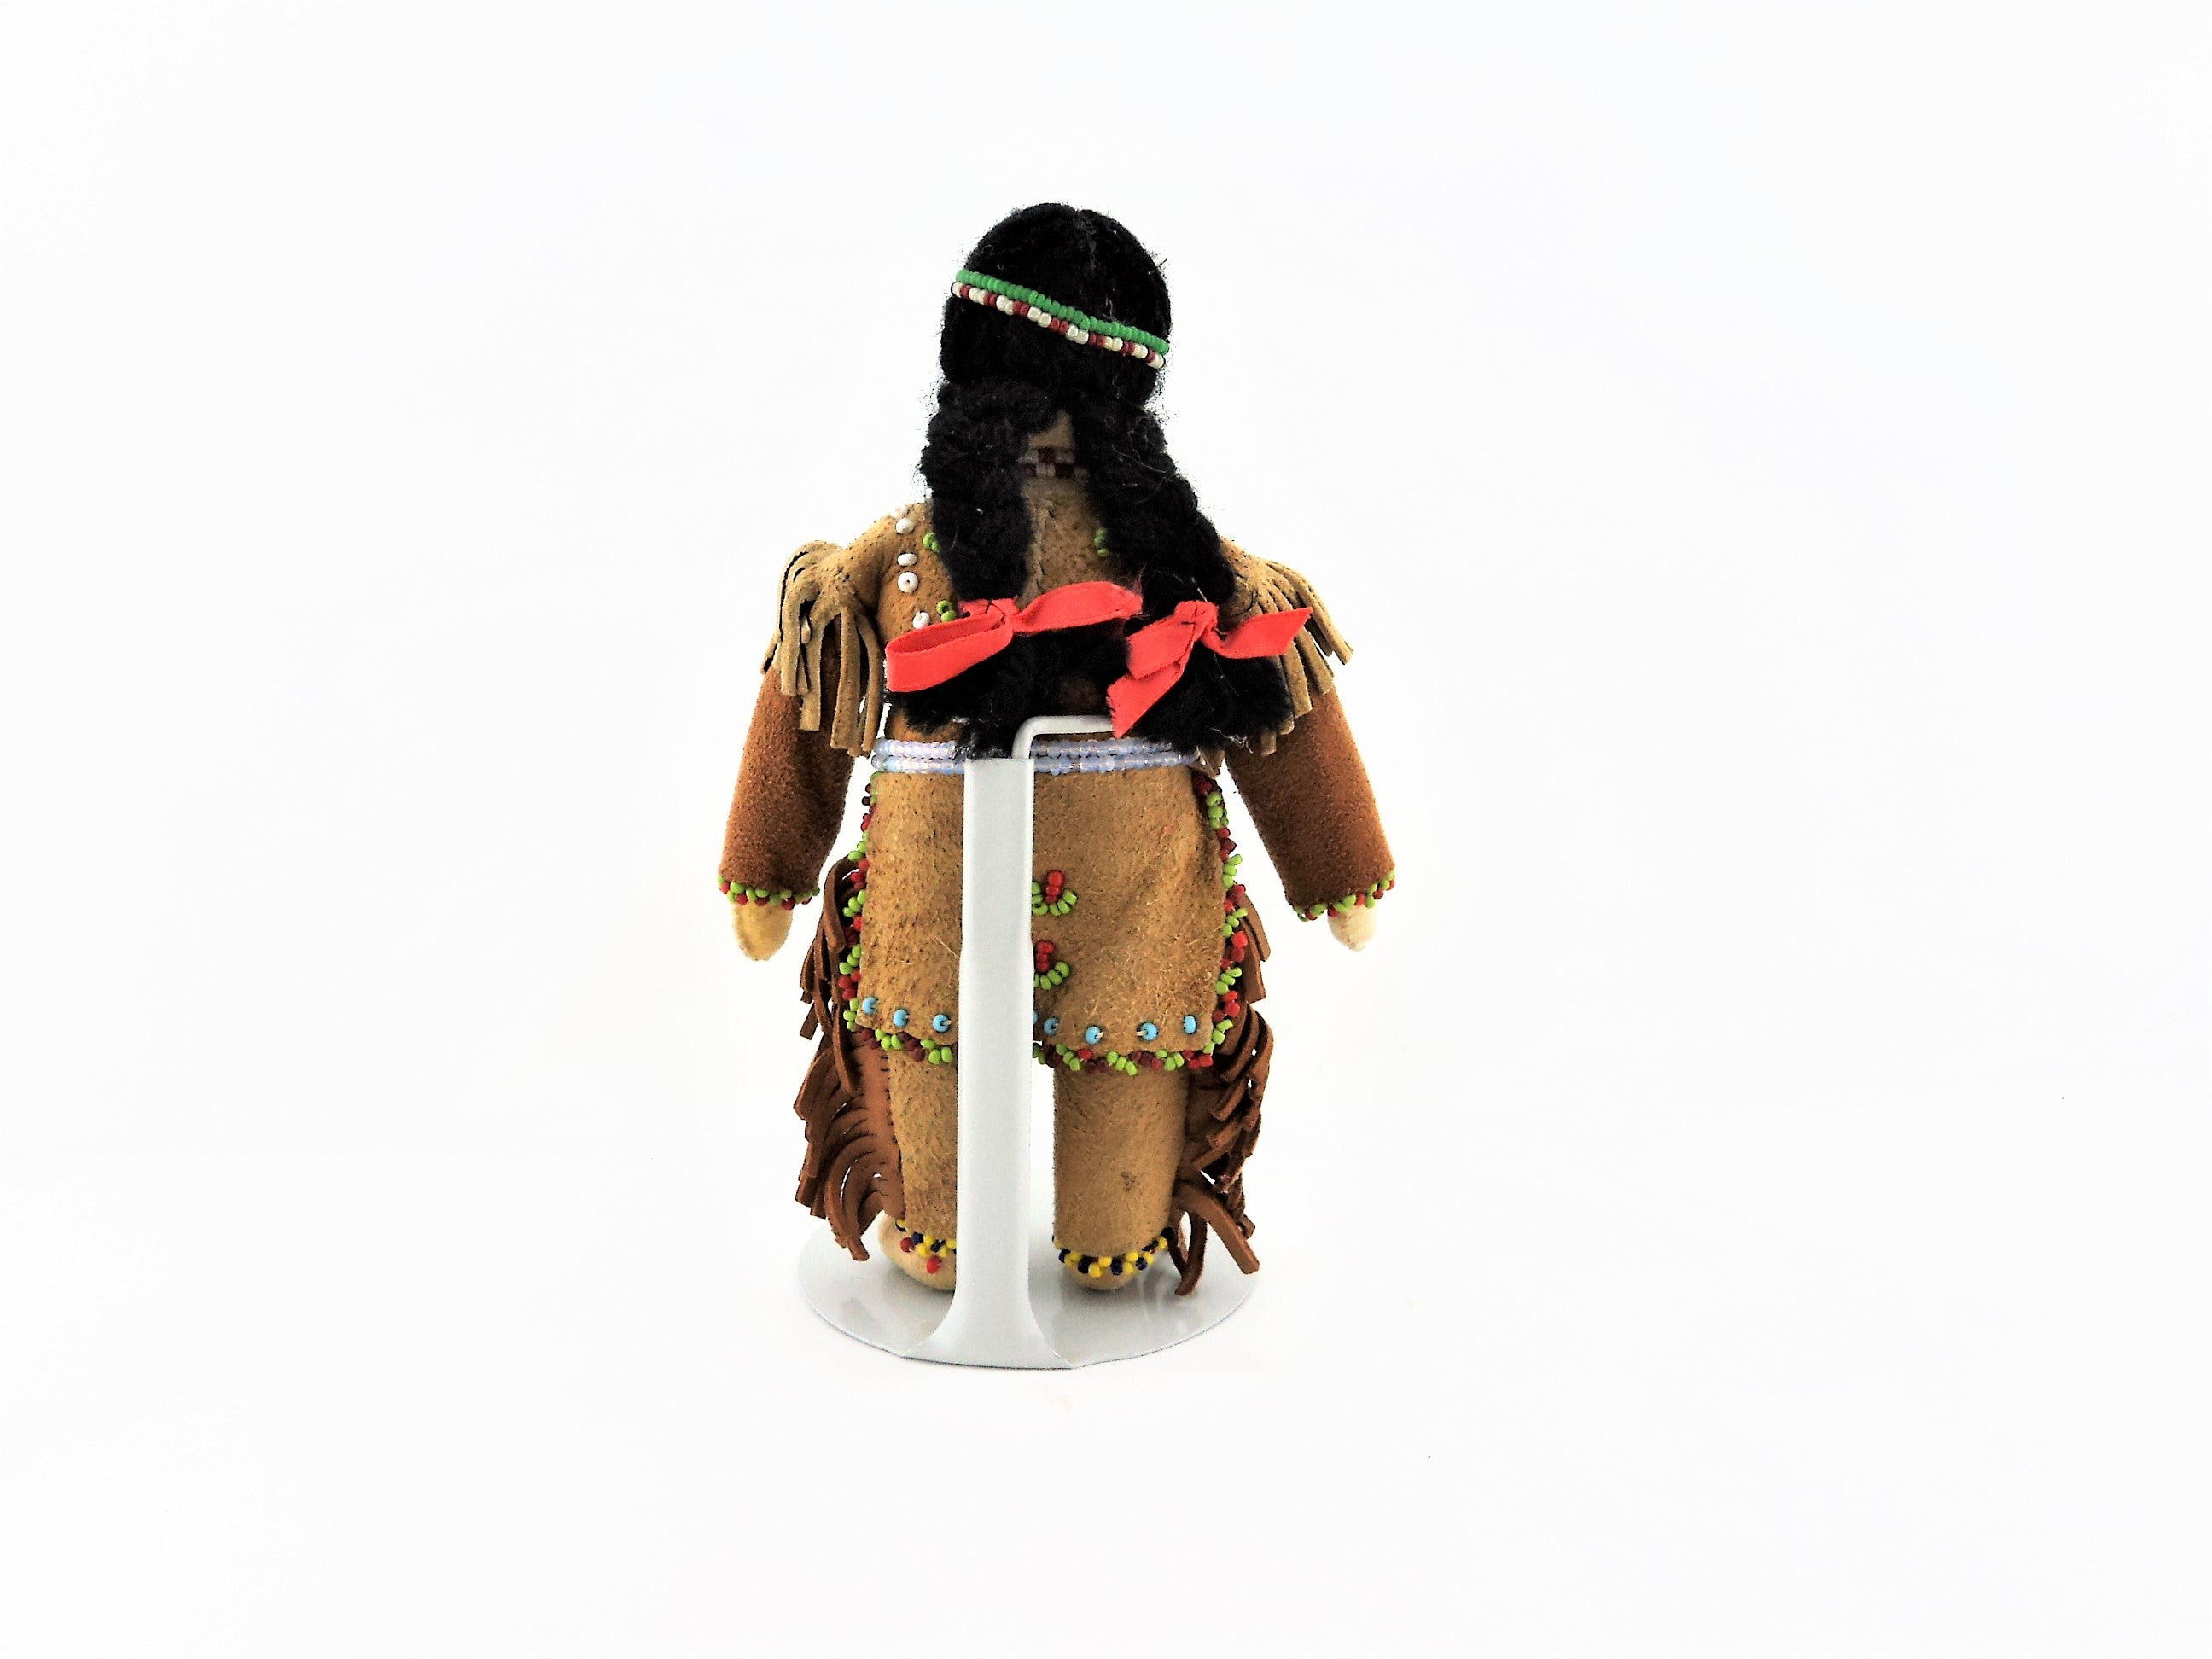 Jicarilla/Apache Female Doll